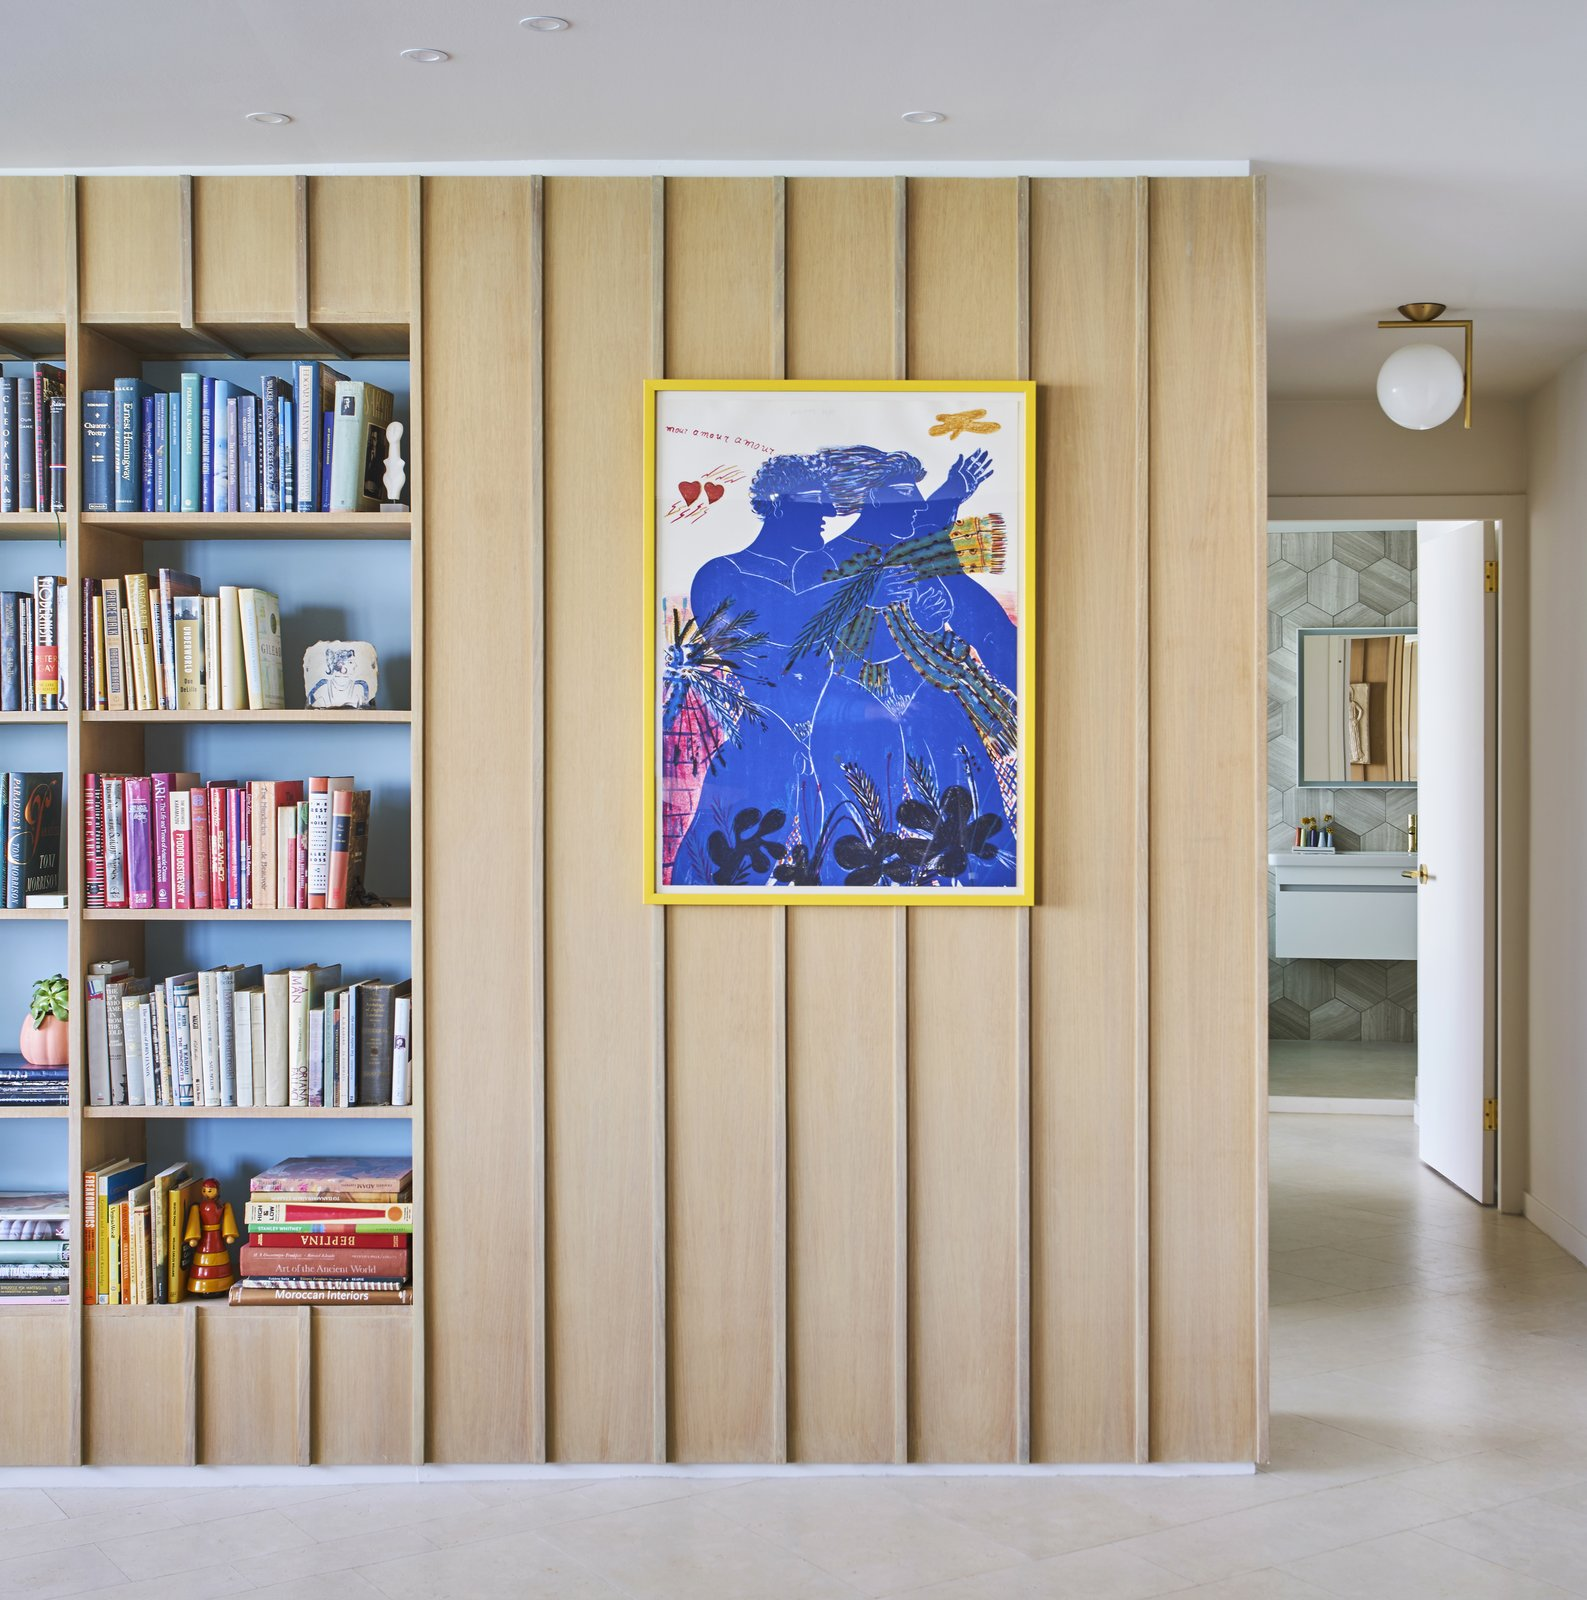 Cork Floor, Storage Room, and Shelves Storage Type An Alekos Fassianos lithograph and soft blue niches offset the wood paneling. An IC lamp by Michael Anastassiades hangs in the hallway. - Chicago, Illinois Dwell Magazine : September / October 2017  Photo 3 of 8 in 8 Bright and Airy Wood-Paneled Spaces from An Interior Designer Helps His Mother Turn Her 1960s Chicago Apartment Into a Colorful Haven